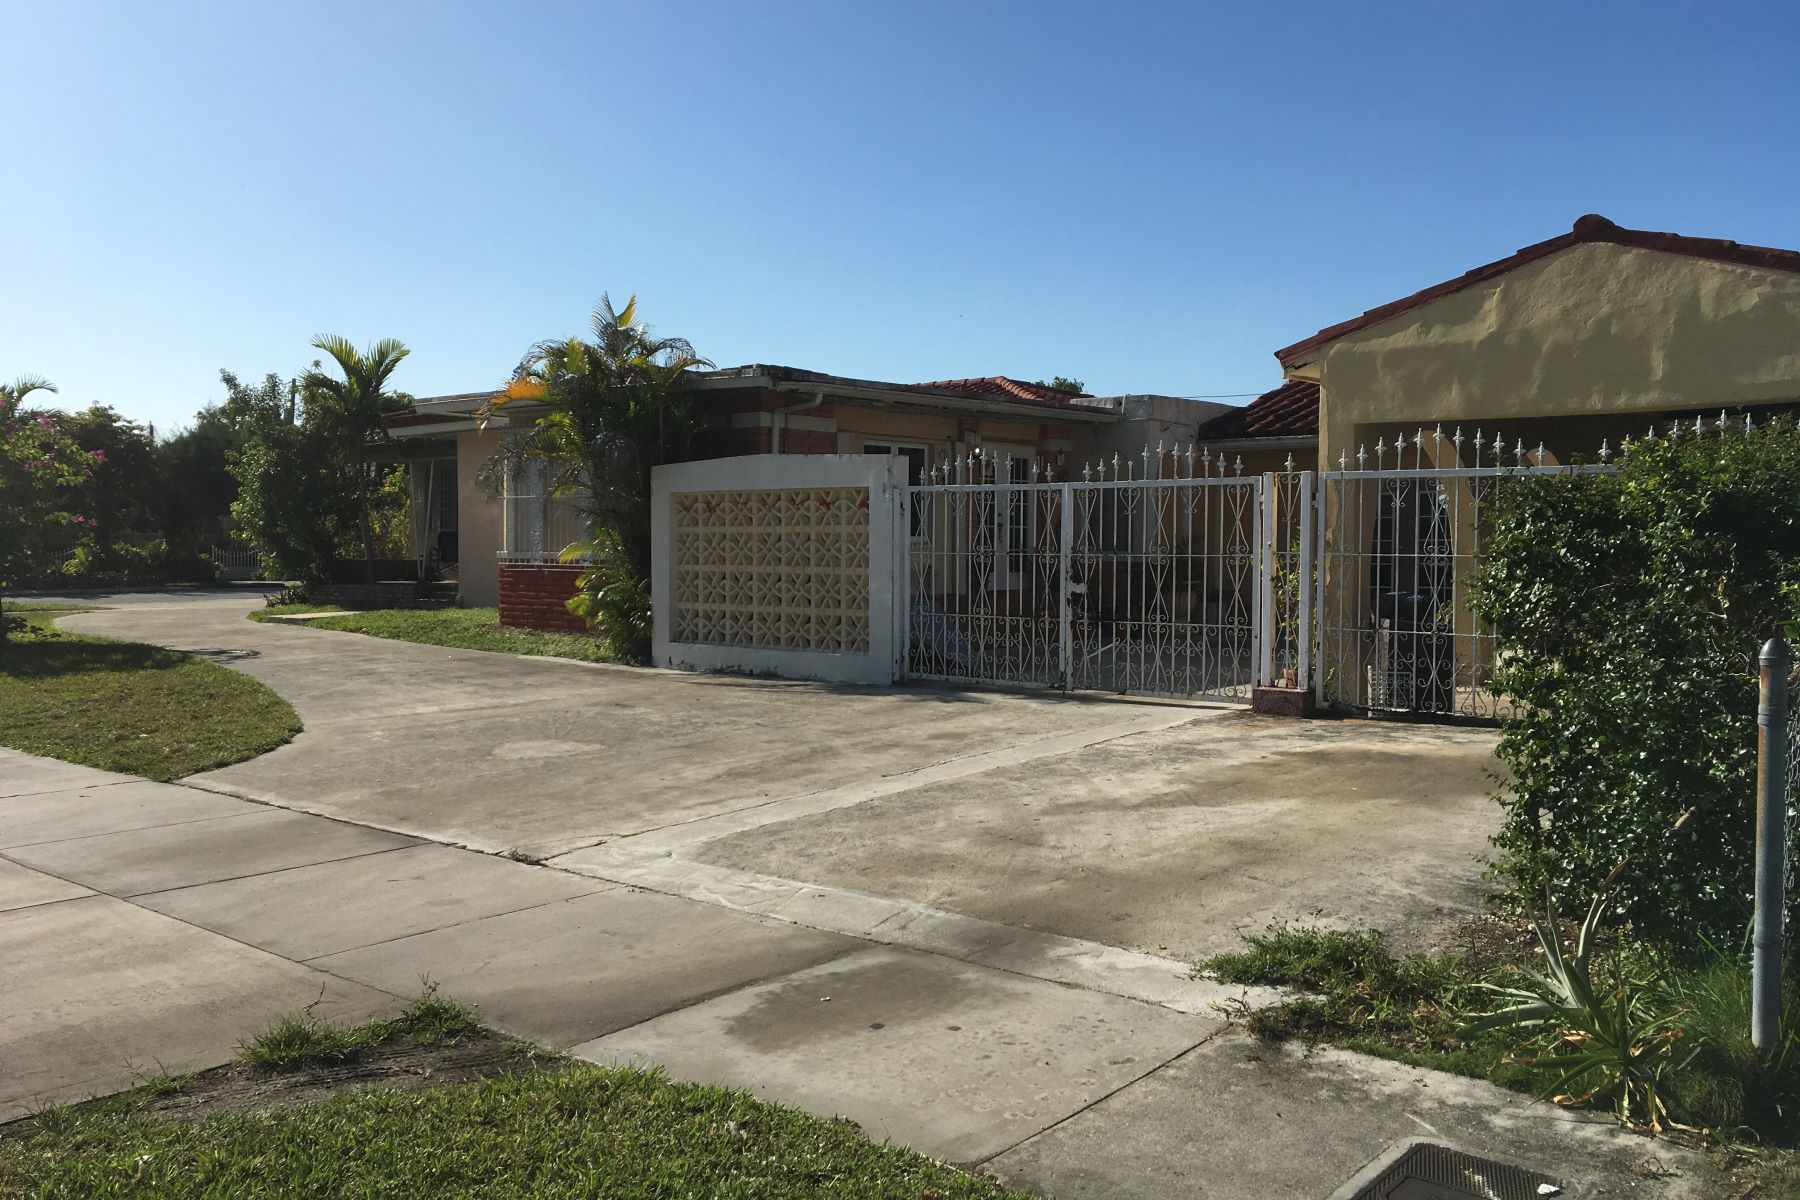 House for Sale at 900 Sw 24th Rd 900 Sw 24th Rd Miami, Florida 33129 United States